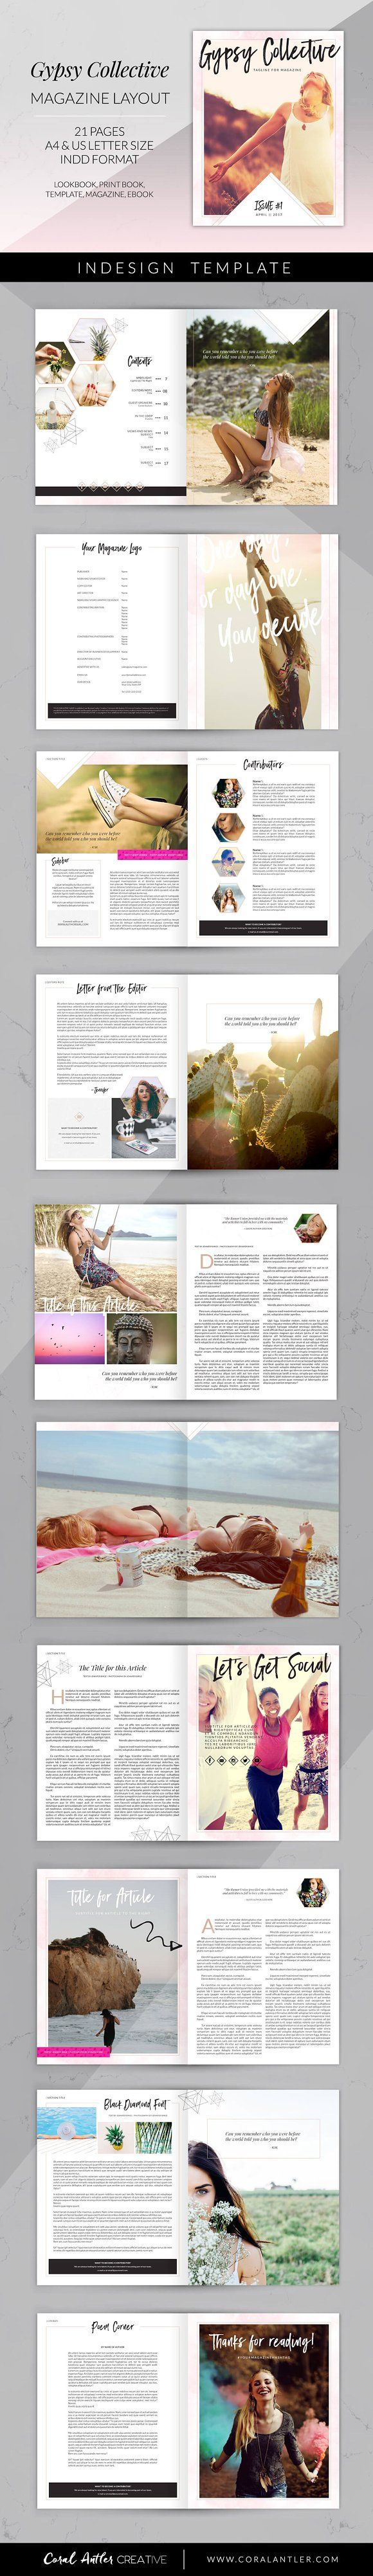 Gypsy Collective Magazine Layout by Coral Antler Creative on @creativemarket